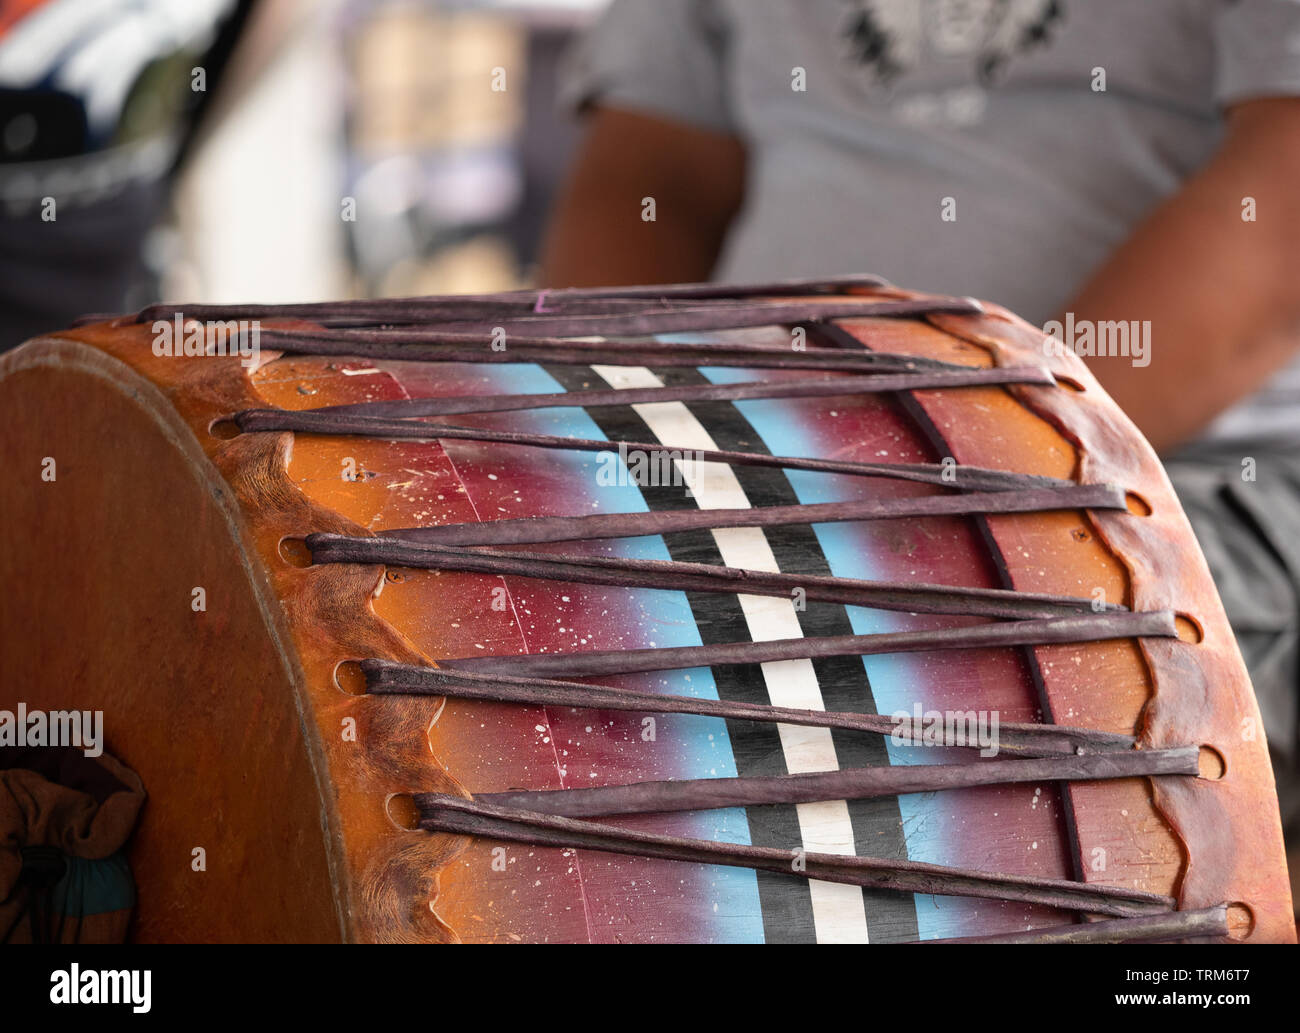 Close up of a wood and leather powwow drum with a drummer in the background. Shallow depth of field. - Stock Image